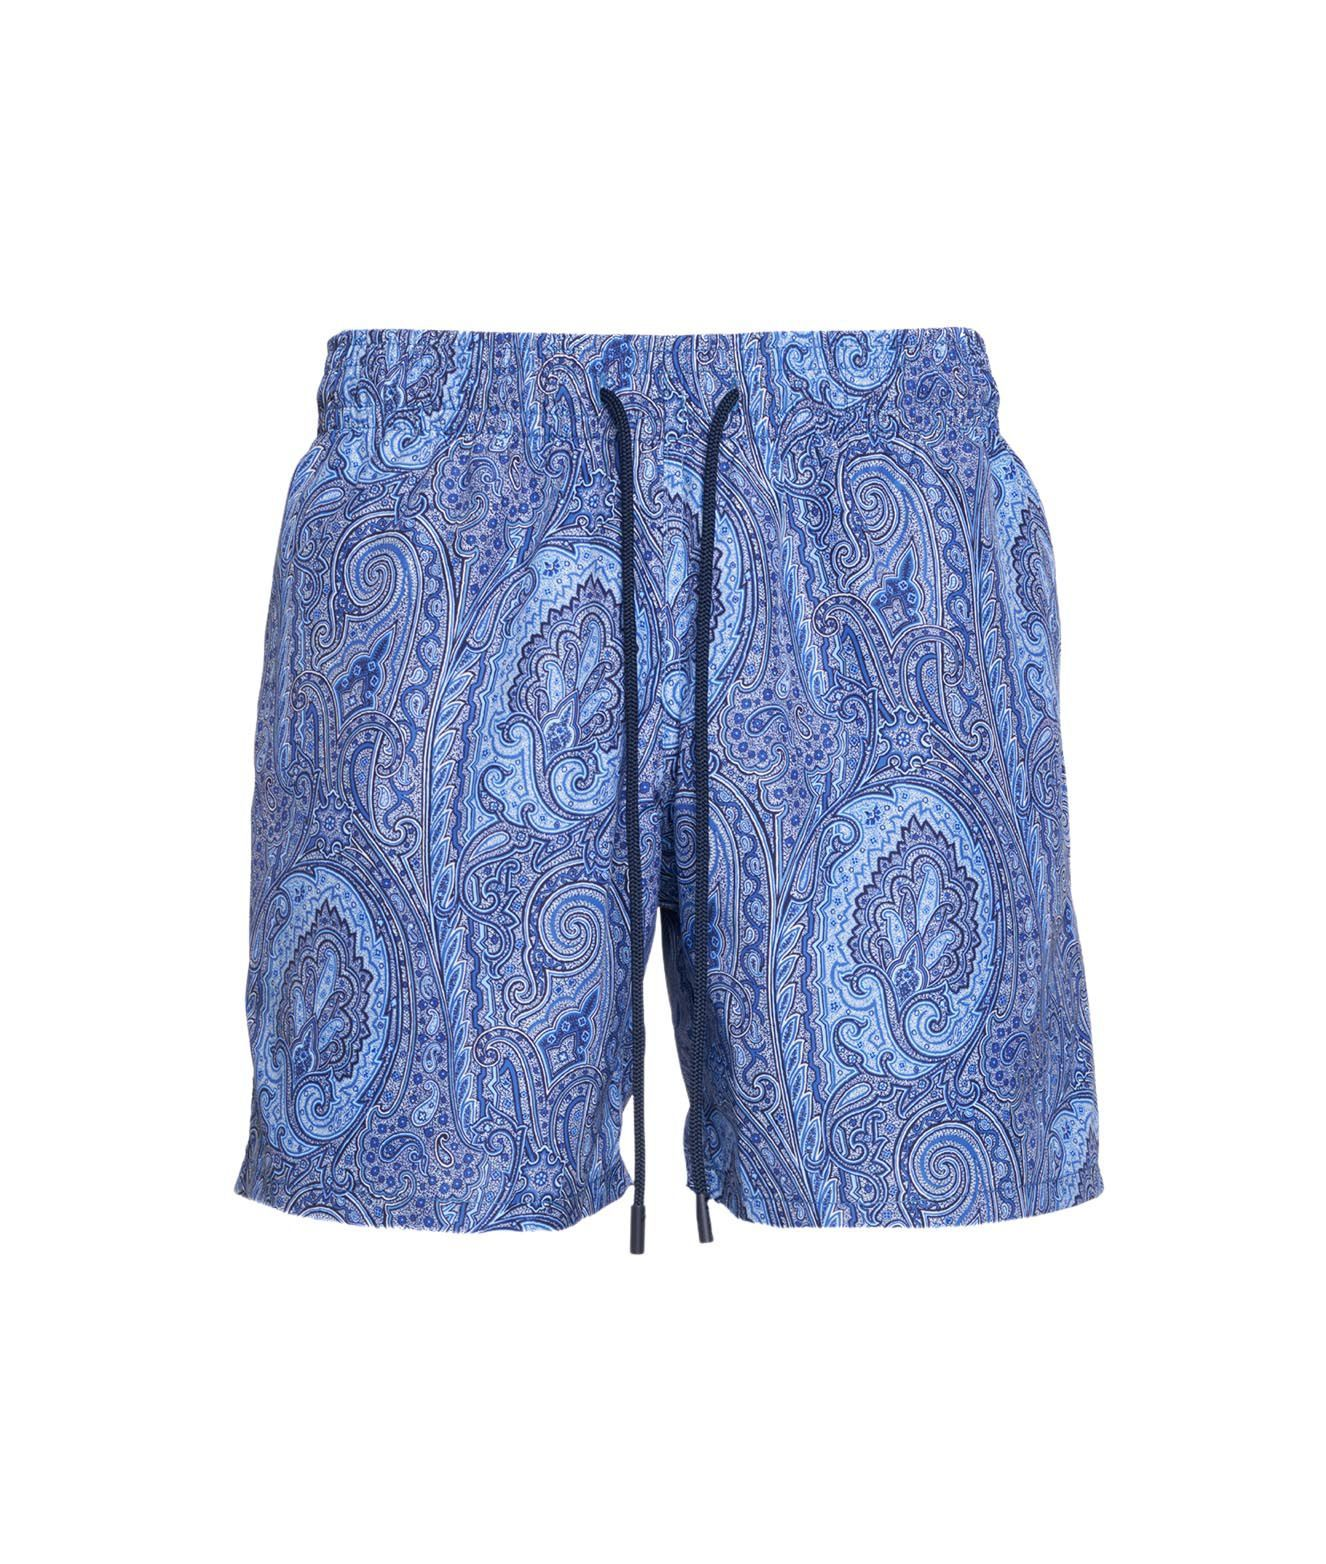 Etro Clothing ETRO MEN'S 1B350122011250 BLUE OTHER MATERIALS TRUNKS